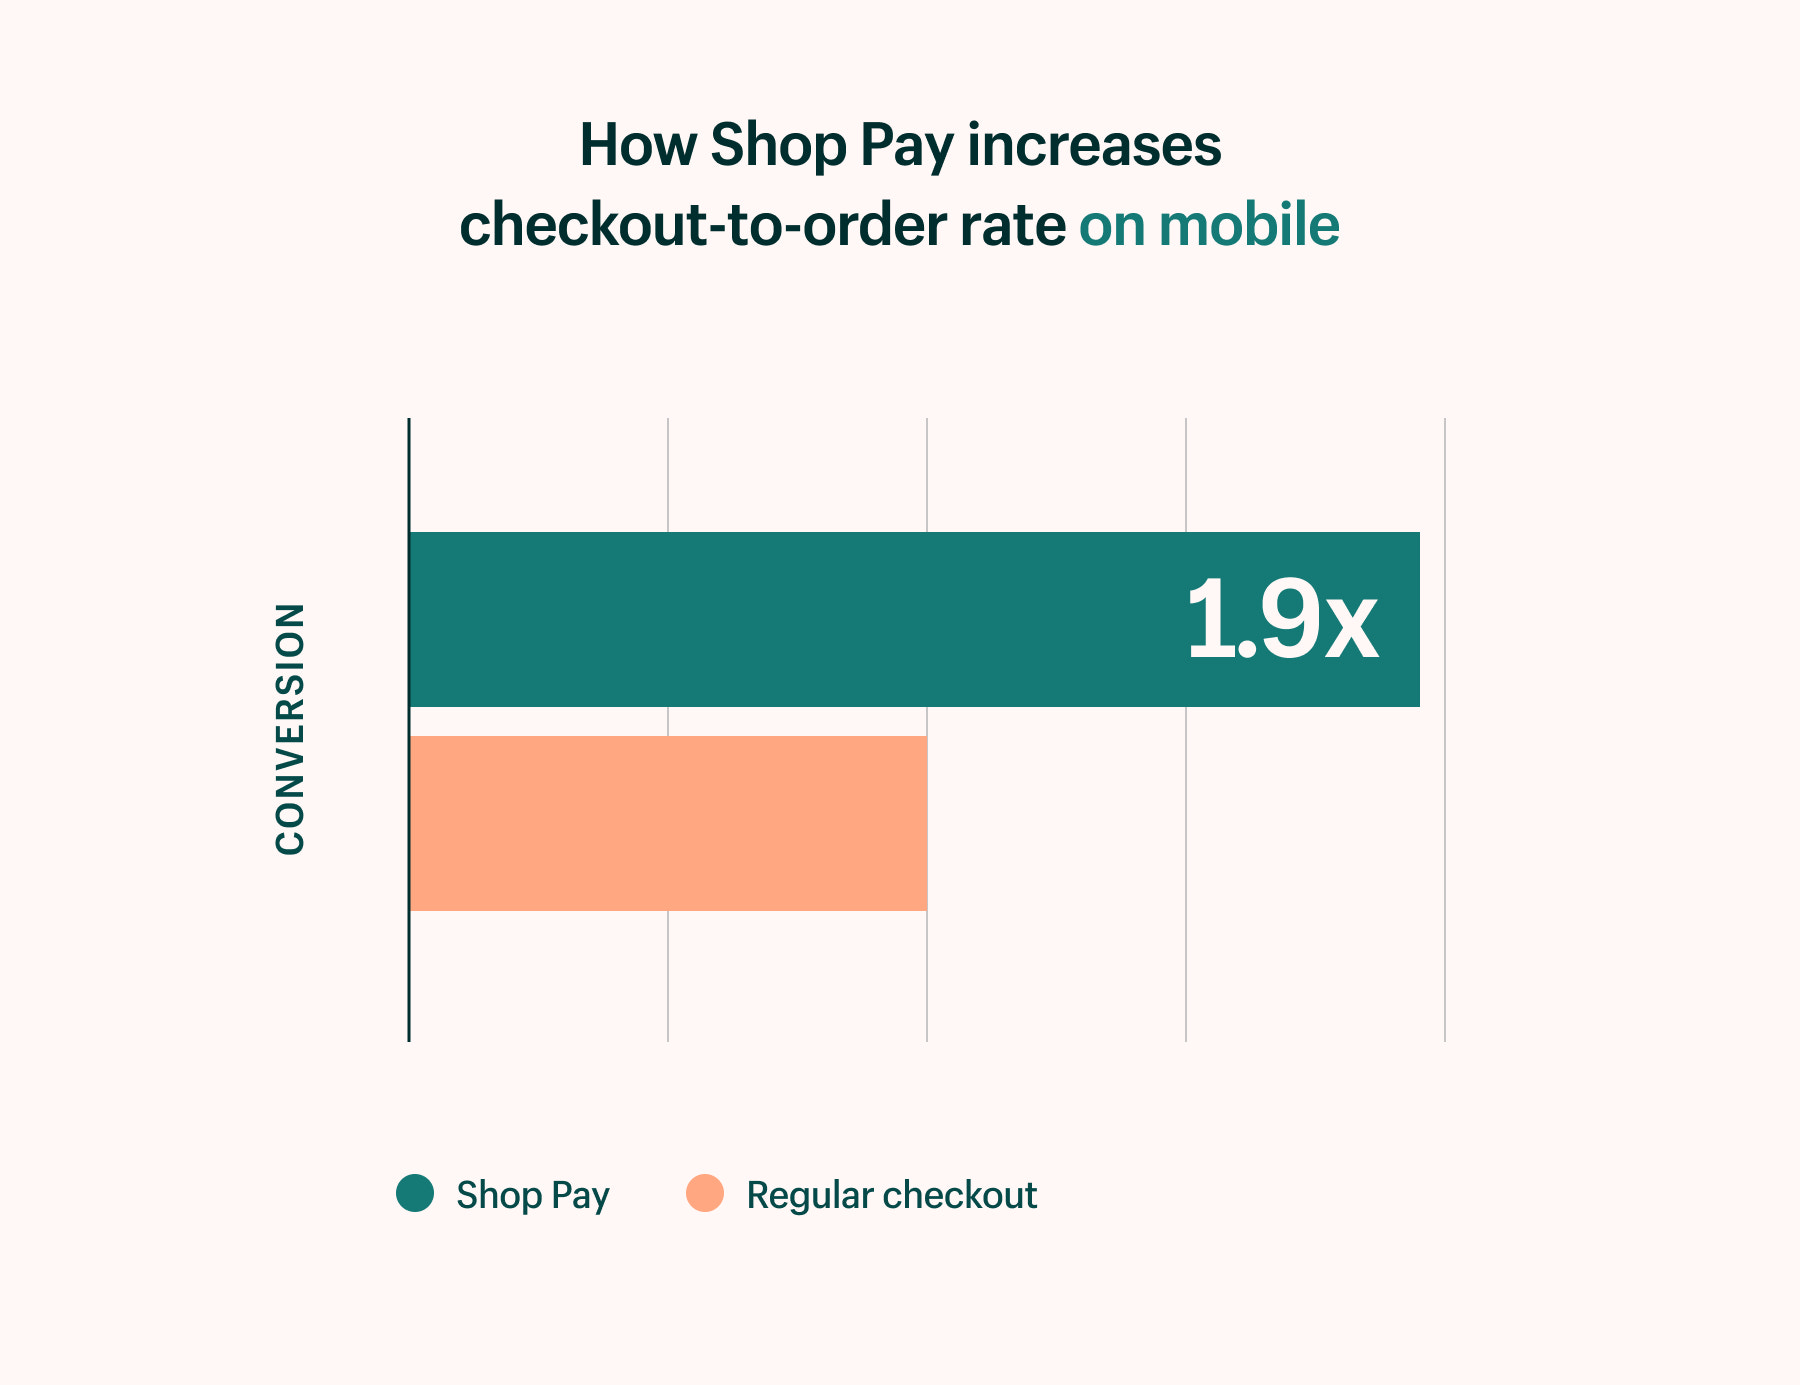 Shop Pay increases checkout-to-order on mobile by 1.9x